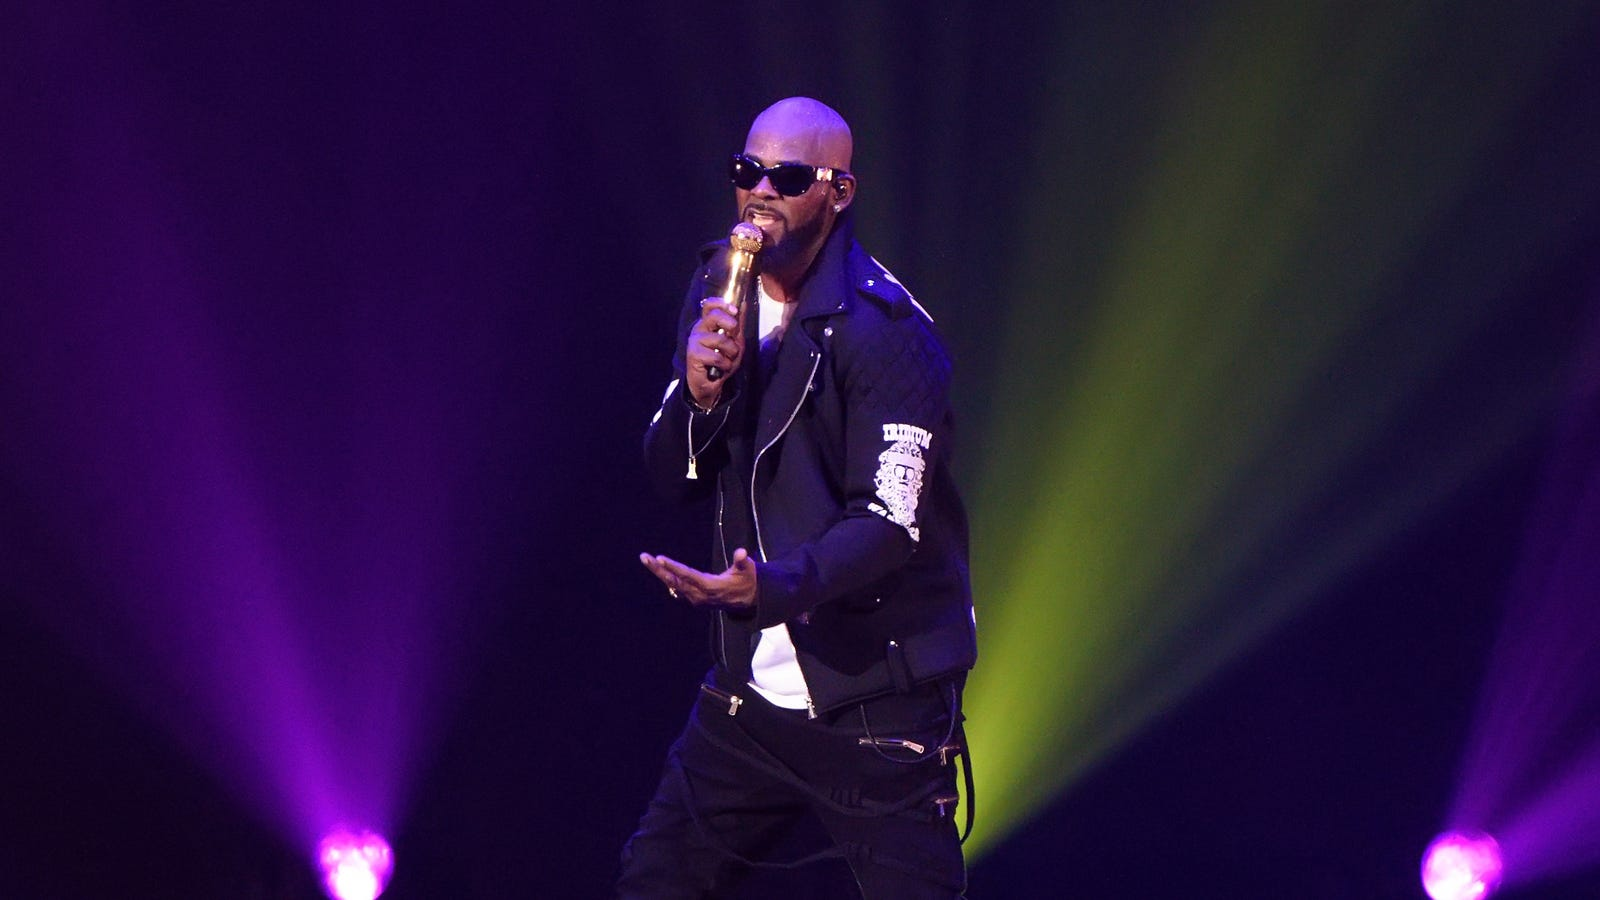 Facebook shuts down page seemingly dedicated to harassing R. Kelly accusers